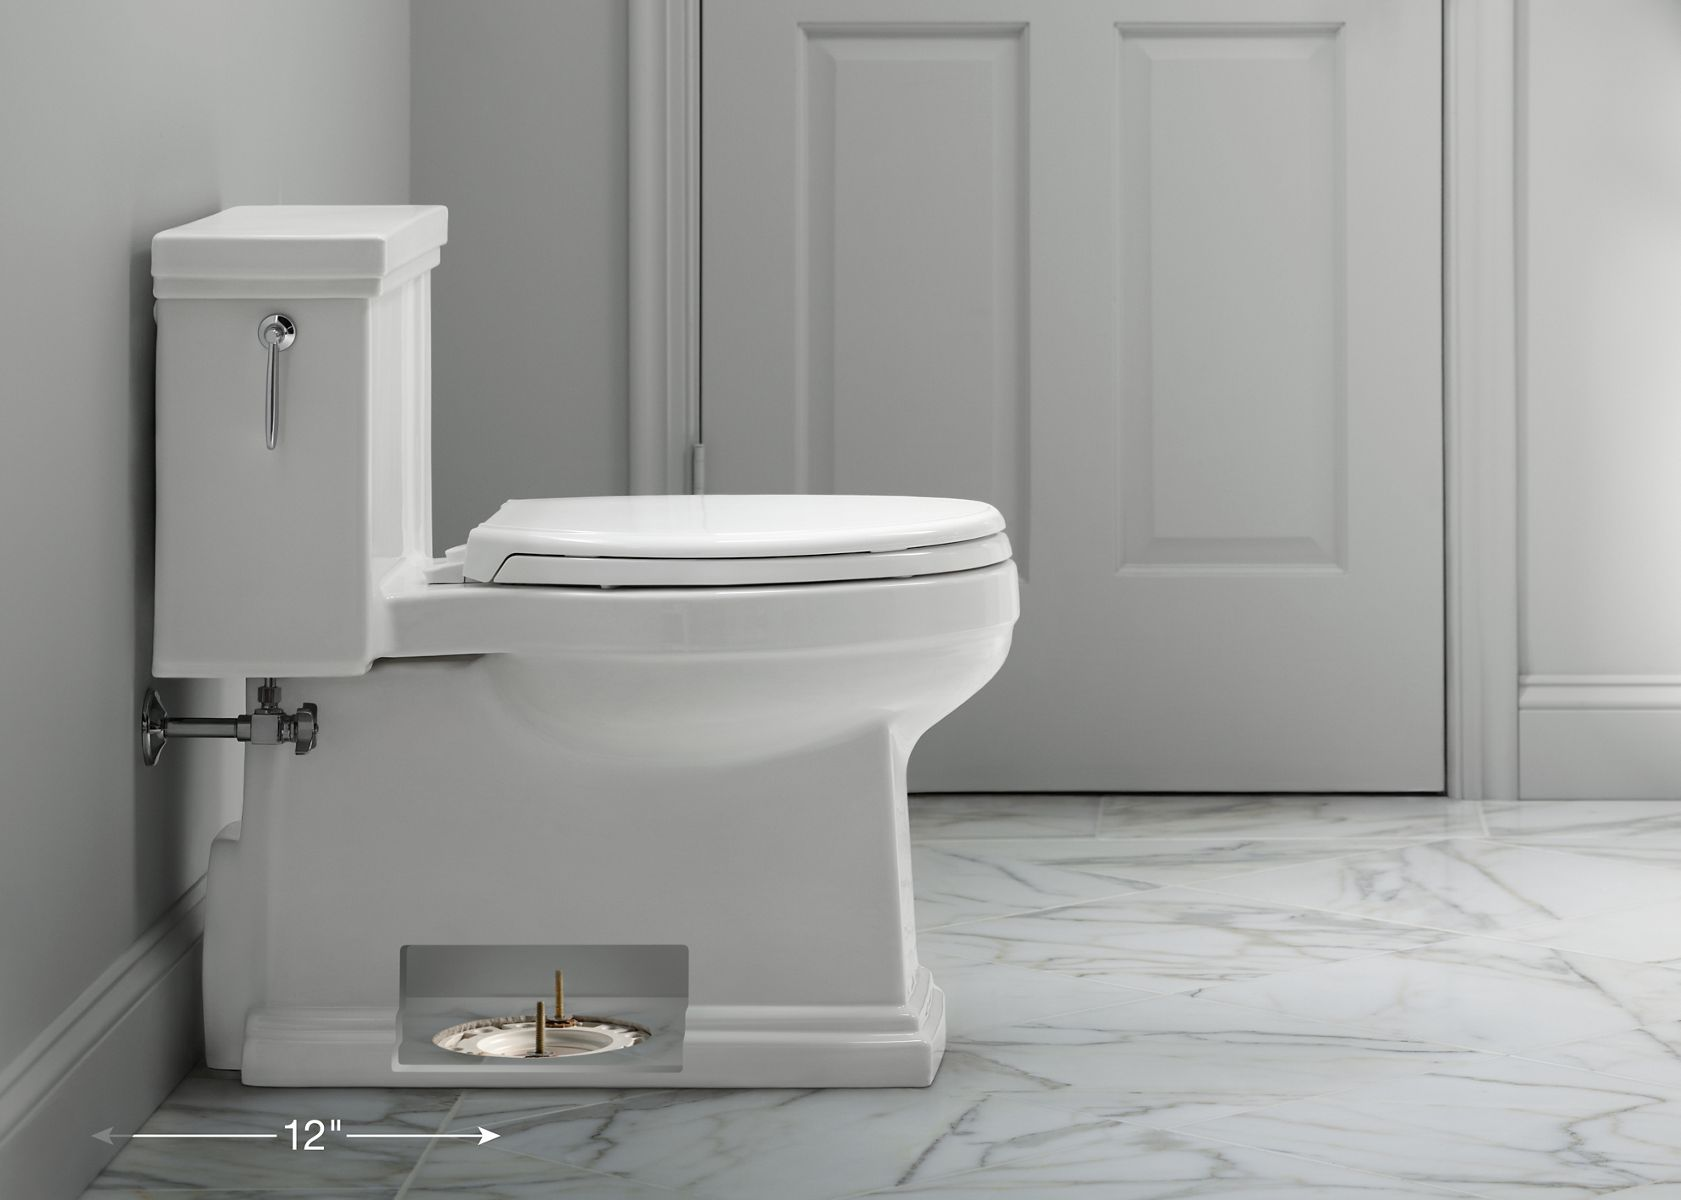 To Ensure Your New Floor Mount Toilet Fits Your Space, Measure From The  Wall (not The Baseboard) To The Floor Bolts That Attach The Toilet To The  Floor.